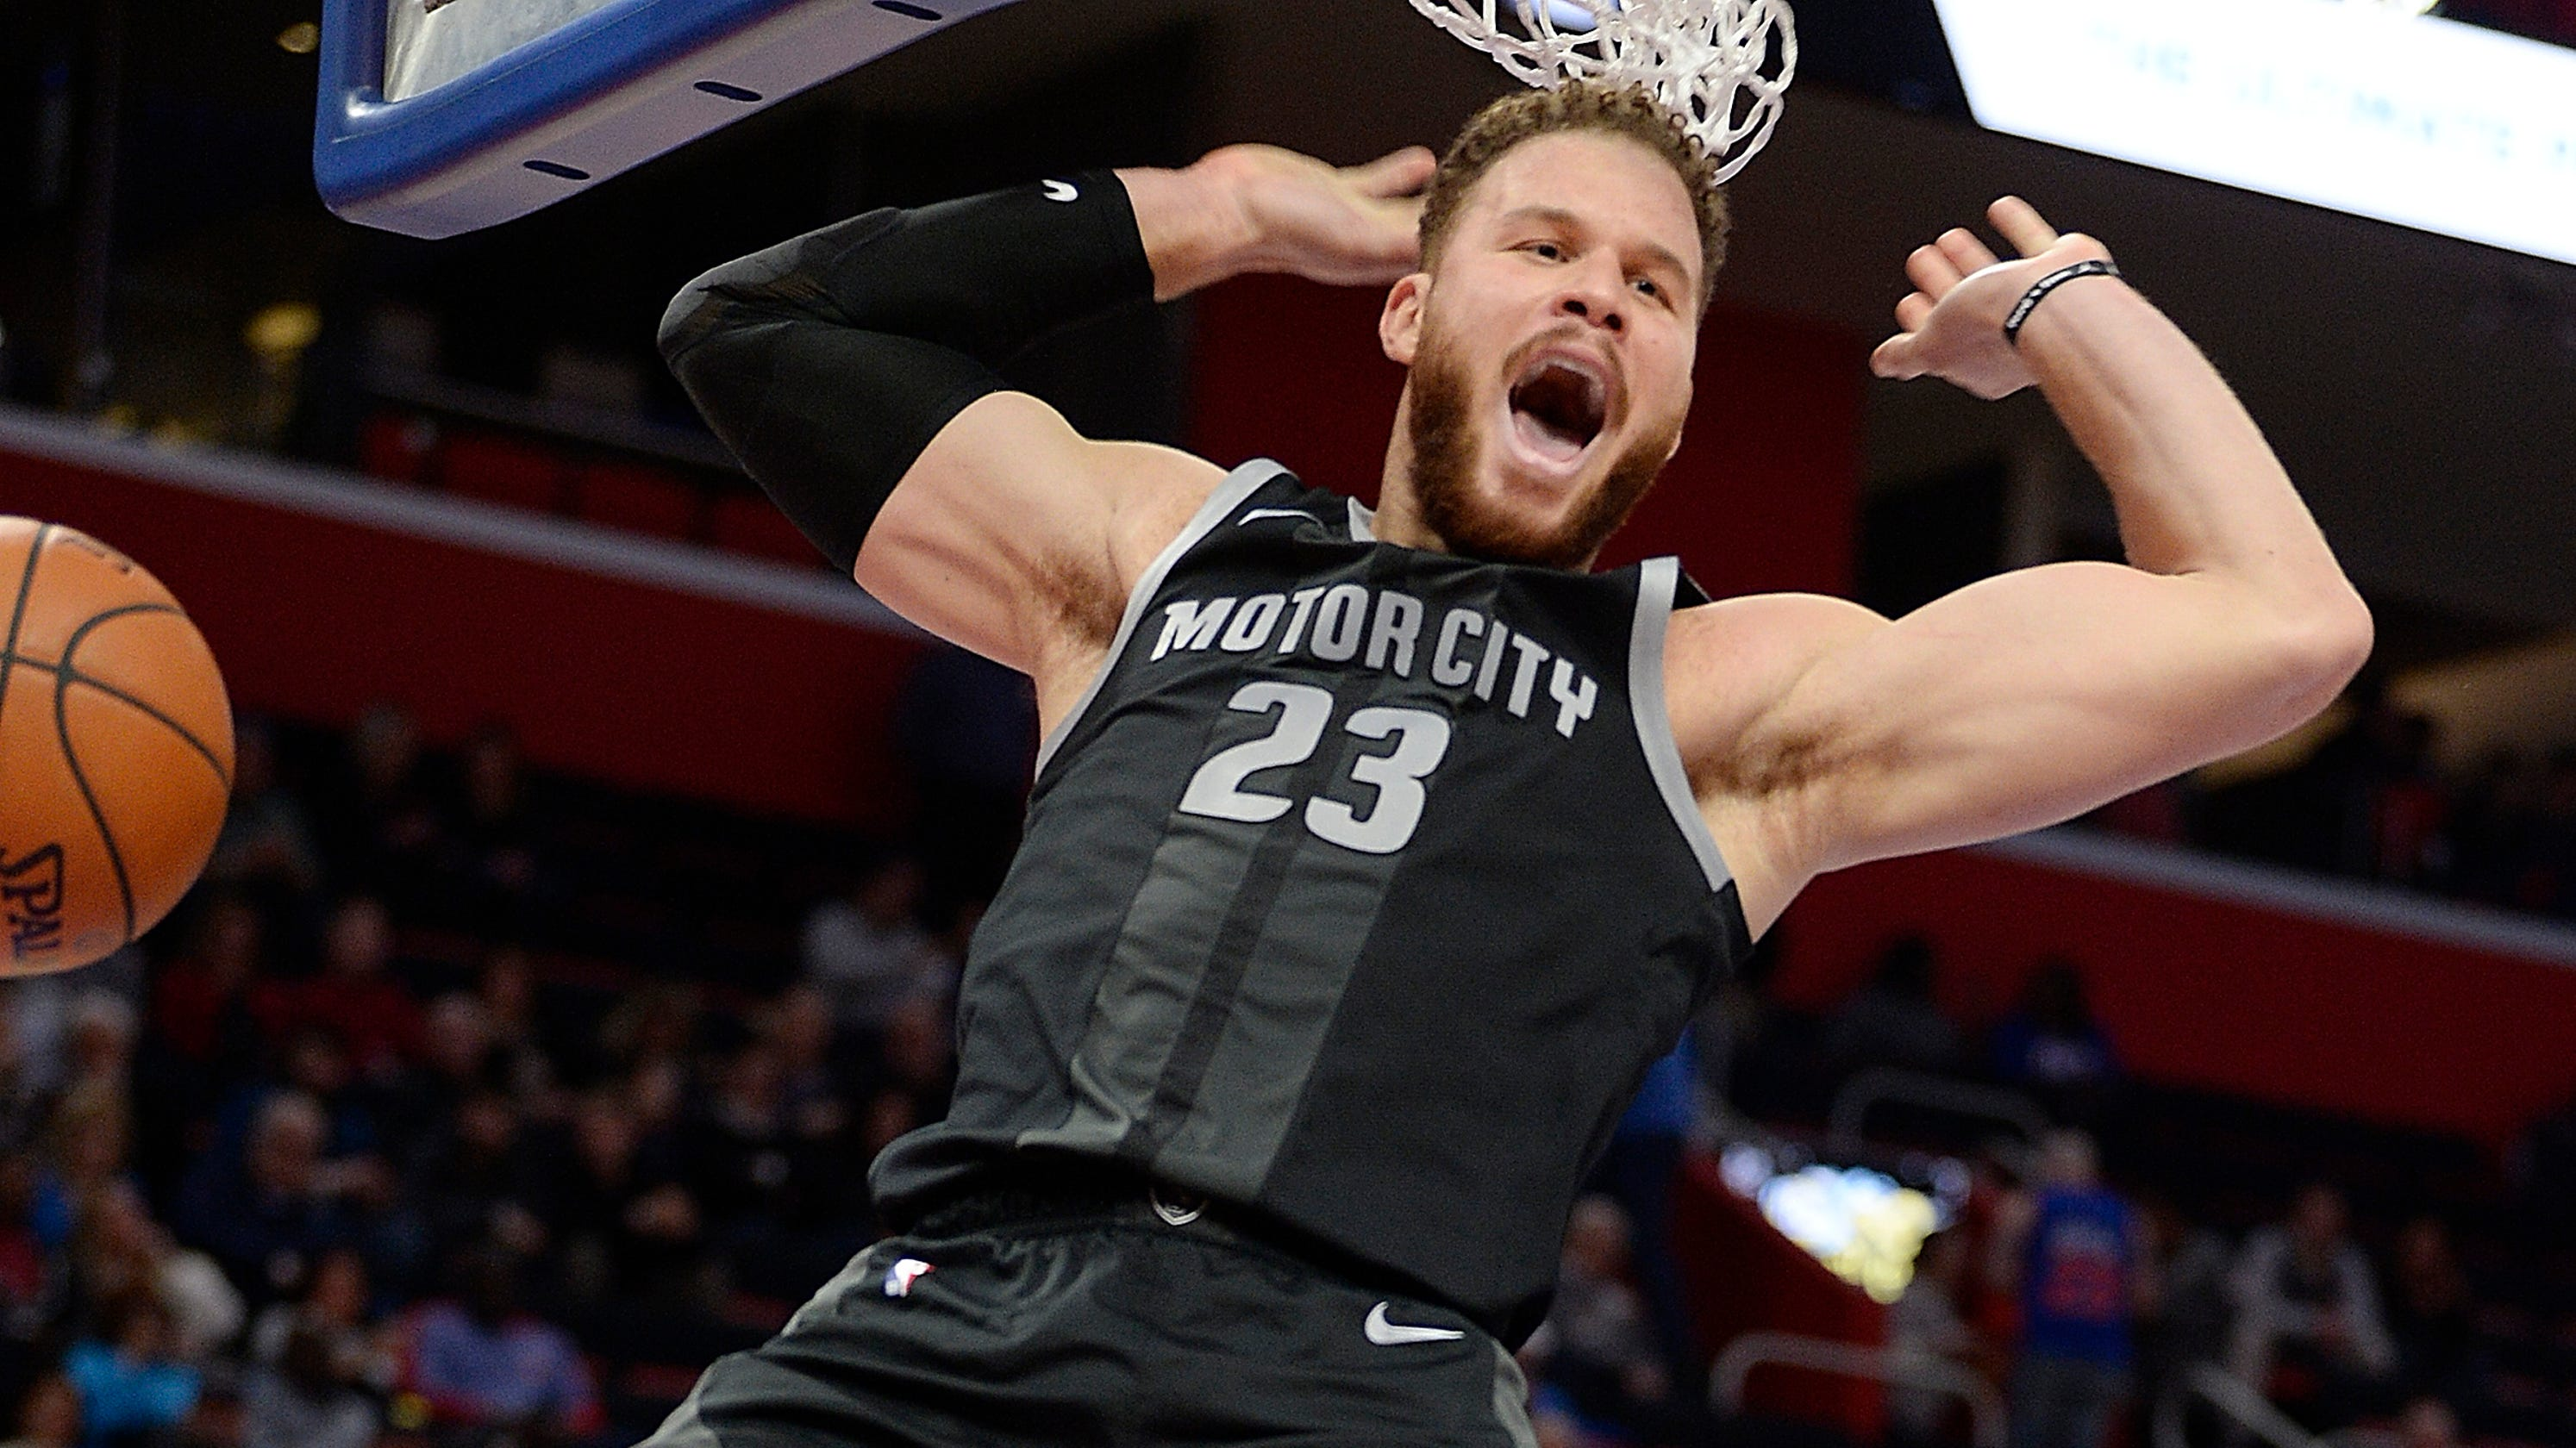 dd0100c0b26 Pistons' Blake Griffin embracing L.A. return with fresh perspective